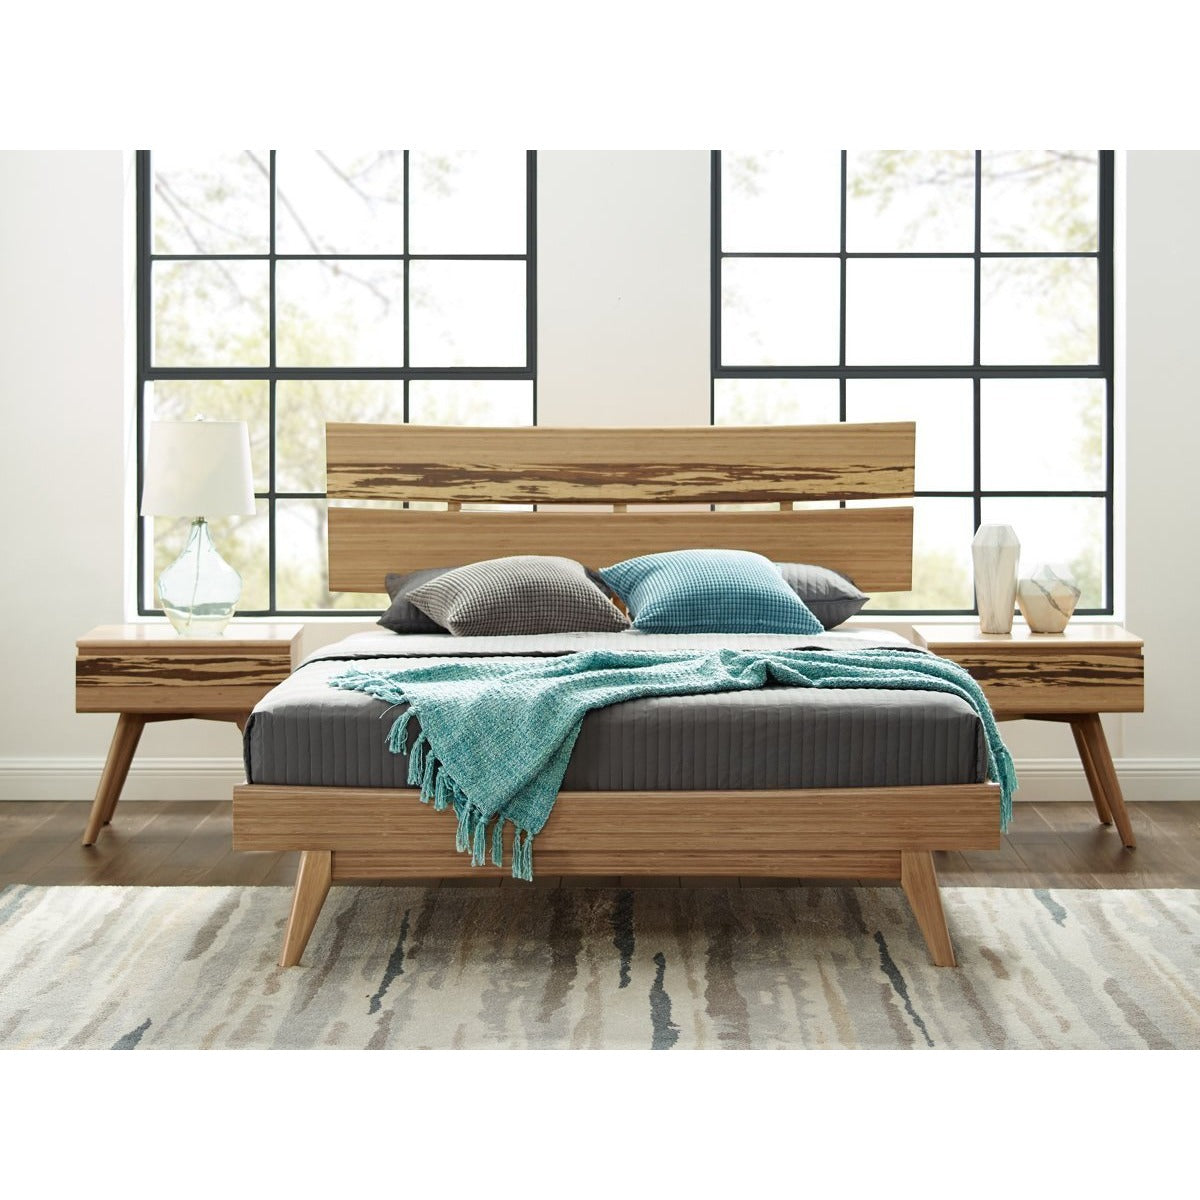 3pc Greenington Azara Modern Bamboo Platform California King Bedroom Set (Includes: 1 California King Bed & 2 Nightstands)-Minimal & Modern